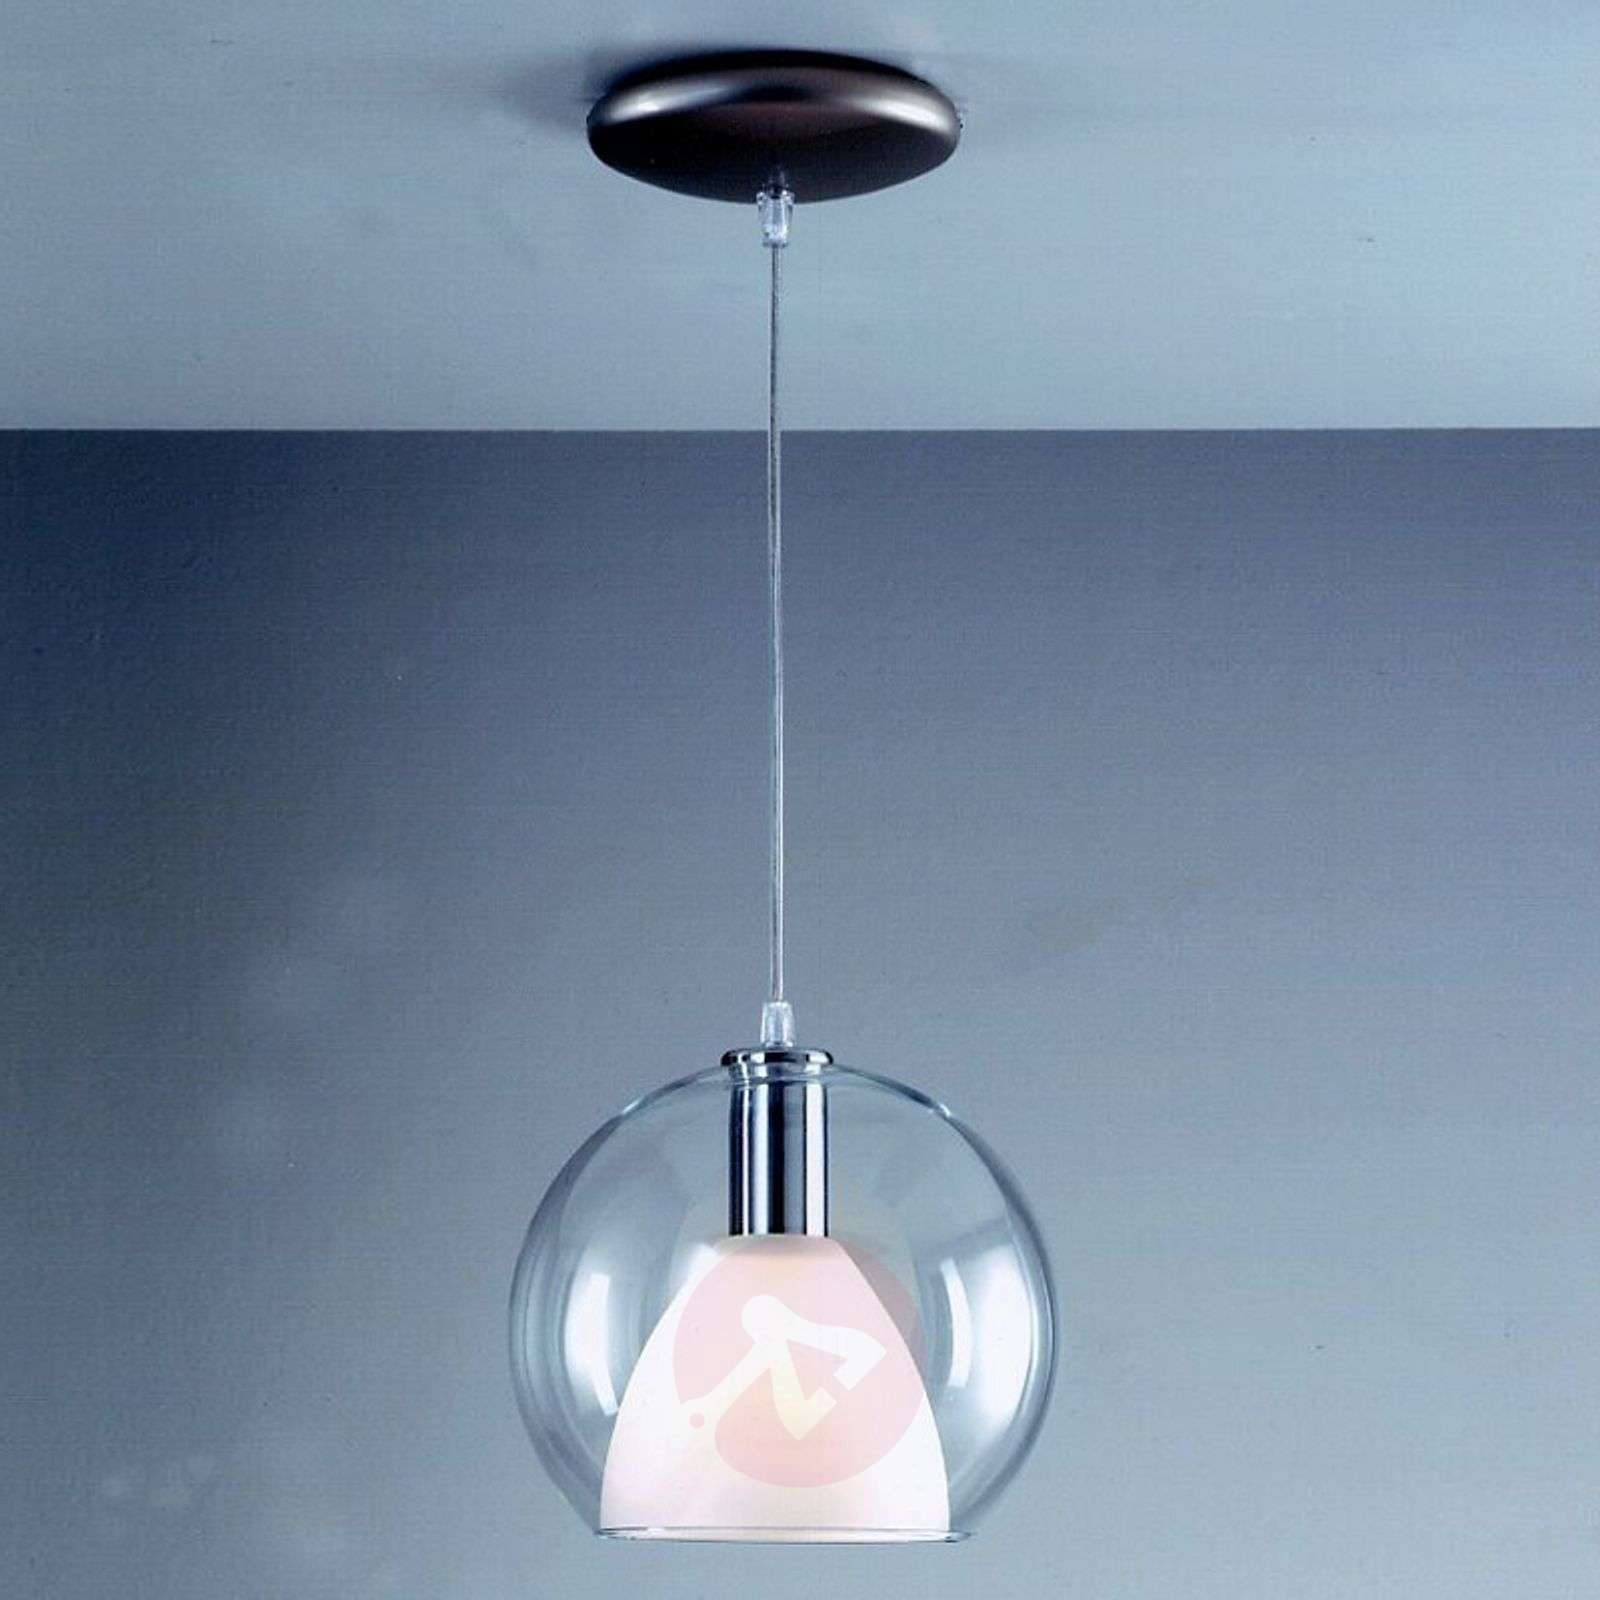 Hanging light BOLA with two glass lampshades-8532157-01